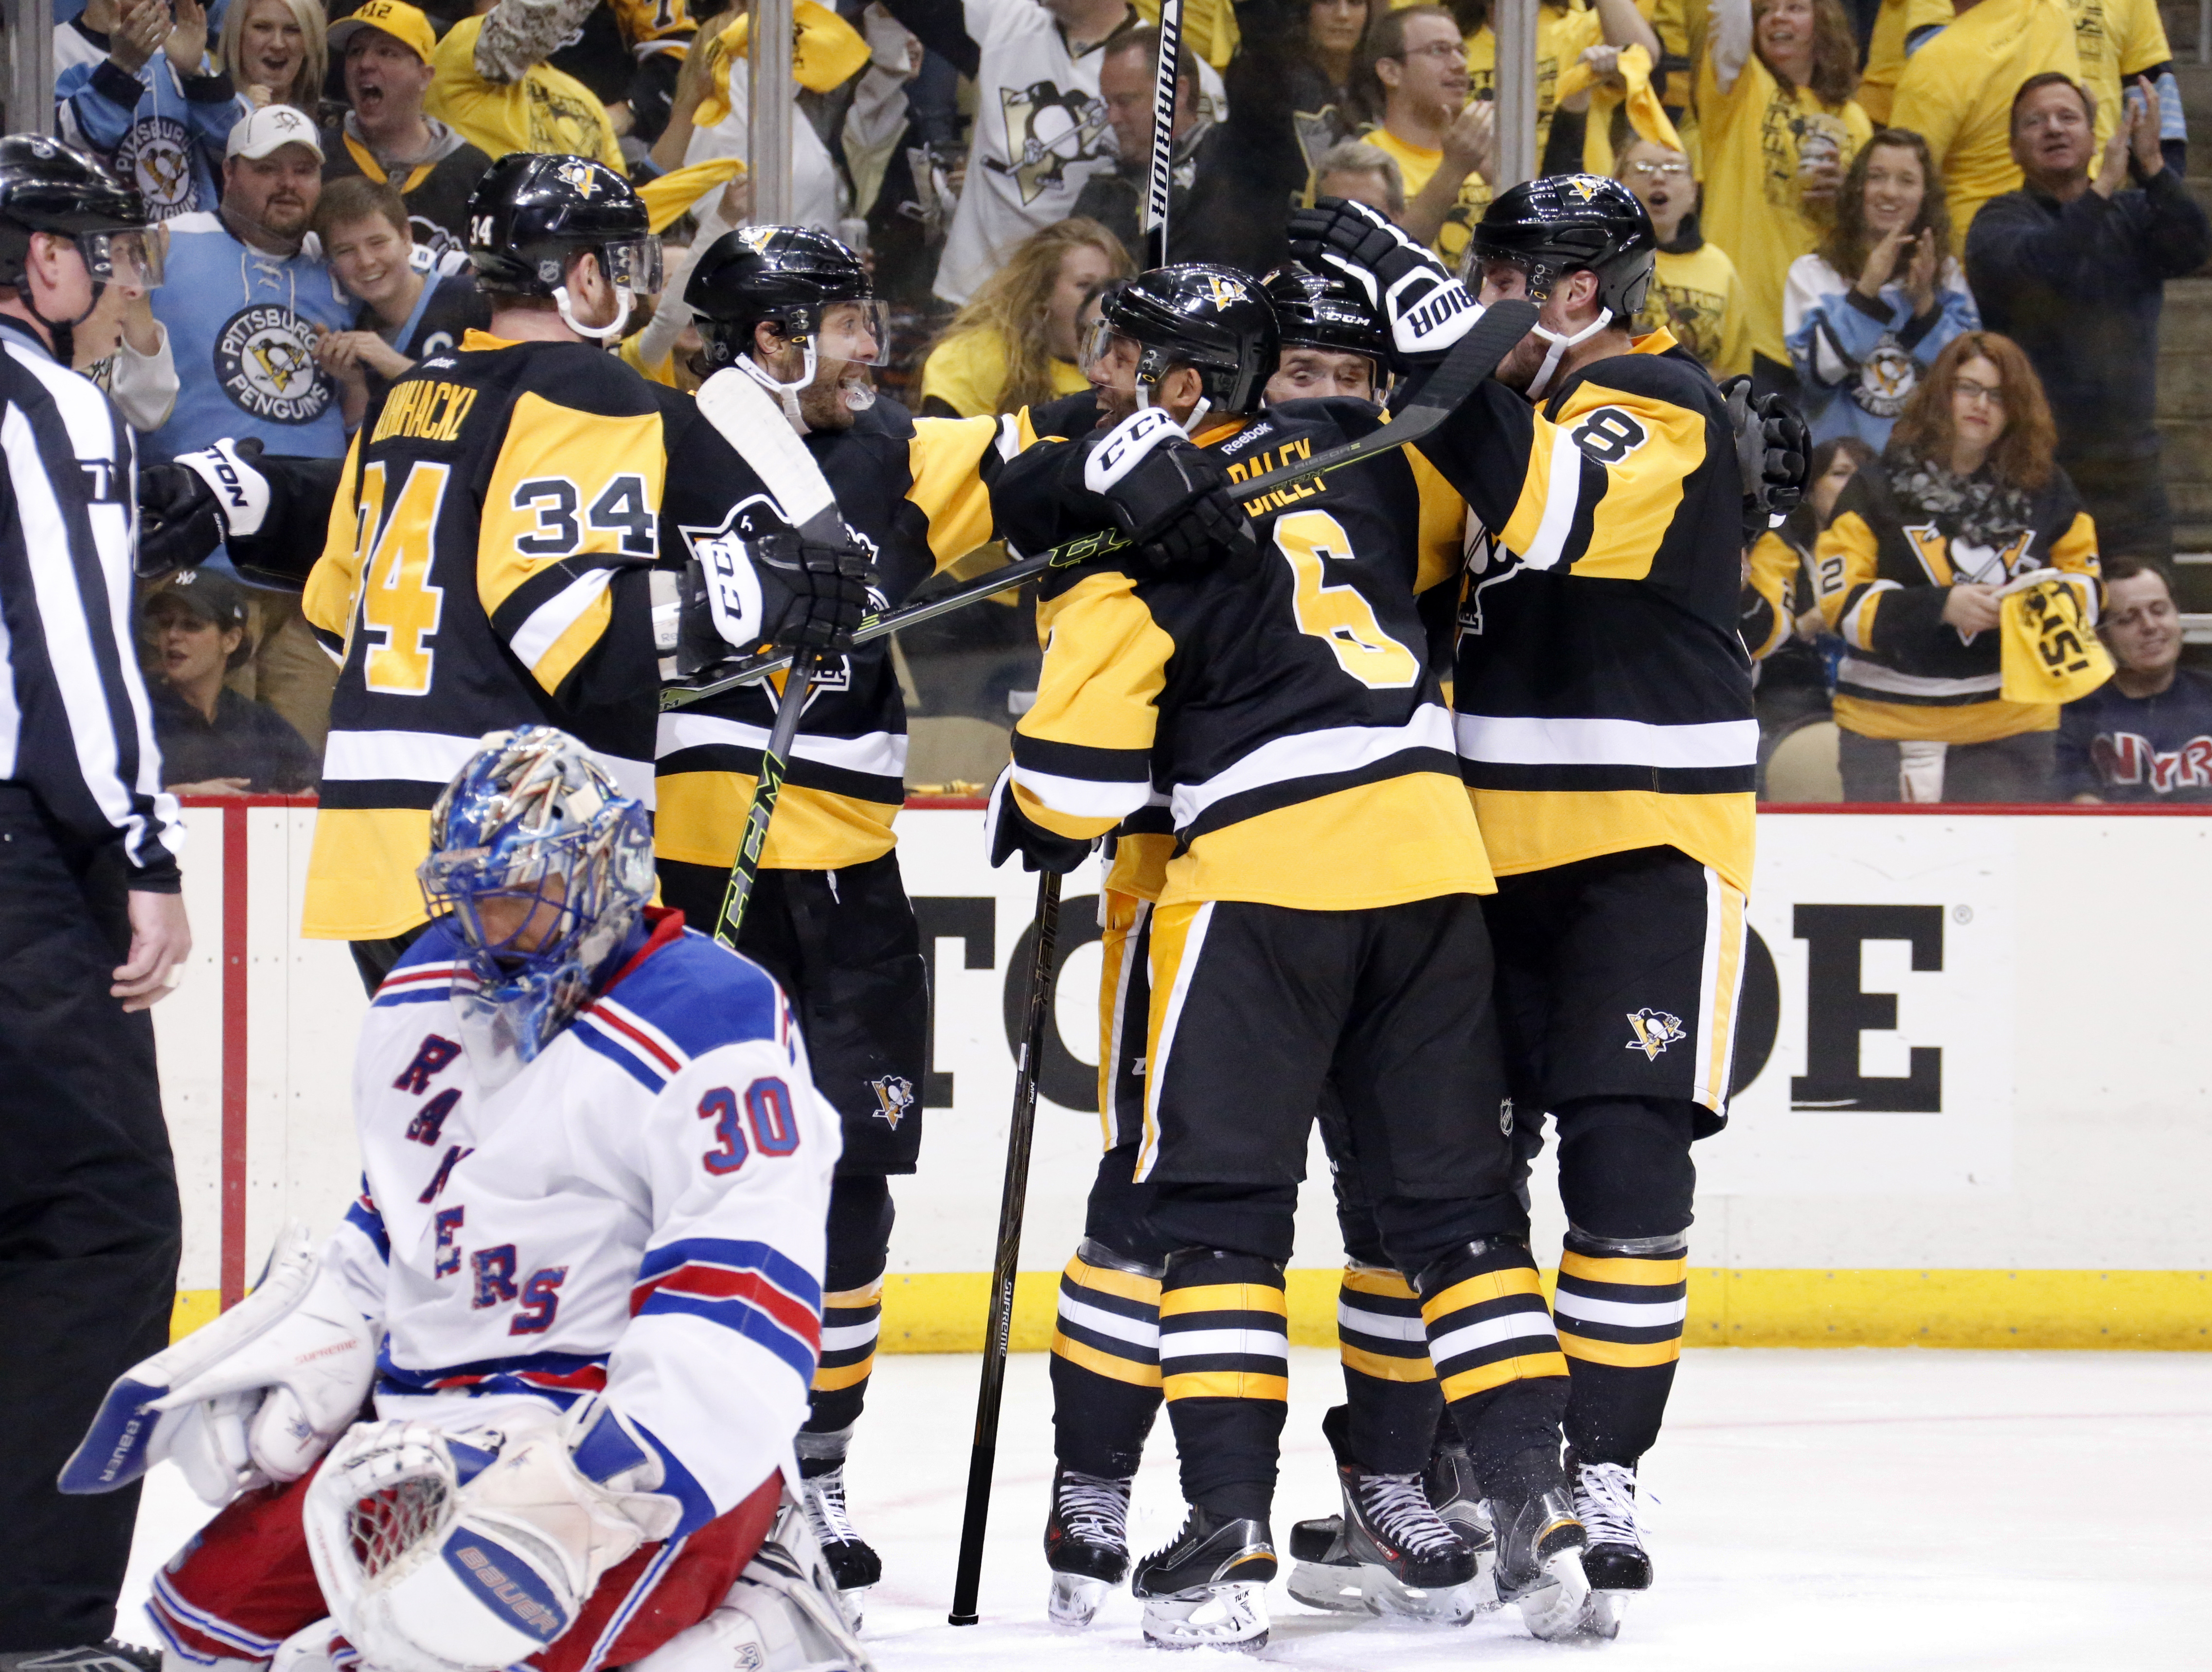 New York Rangers goalie Henrik Lundqvist (30) kneels on the ice as Pittsburgh Penguins' Bryan Rust, second from right rear, and teammates celebrate his goal during the second period in Game 5 of a first-round NHL playoff hockey game in Pittsburgh, Saturda